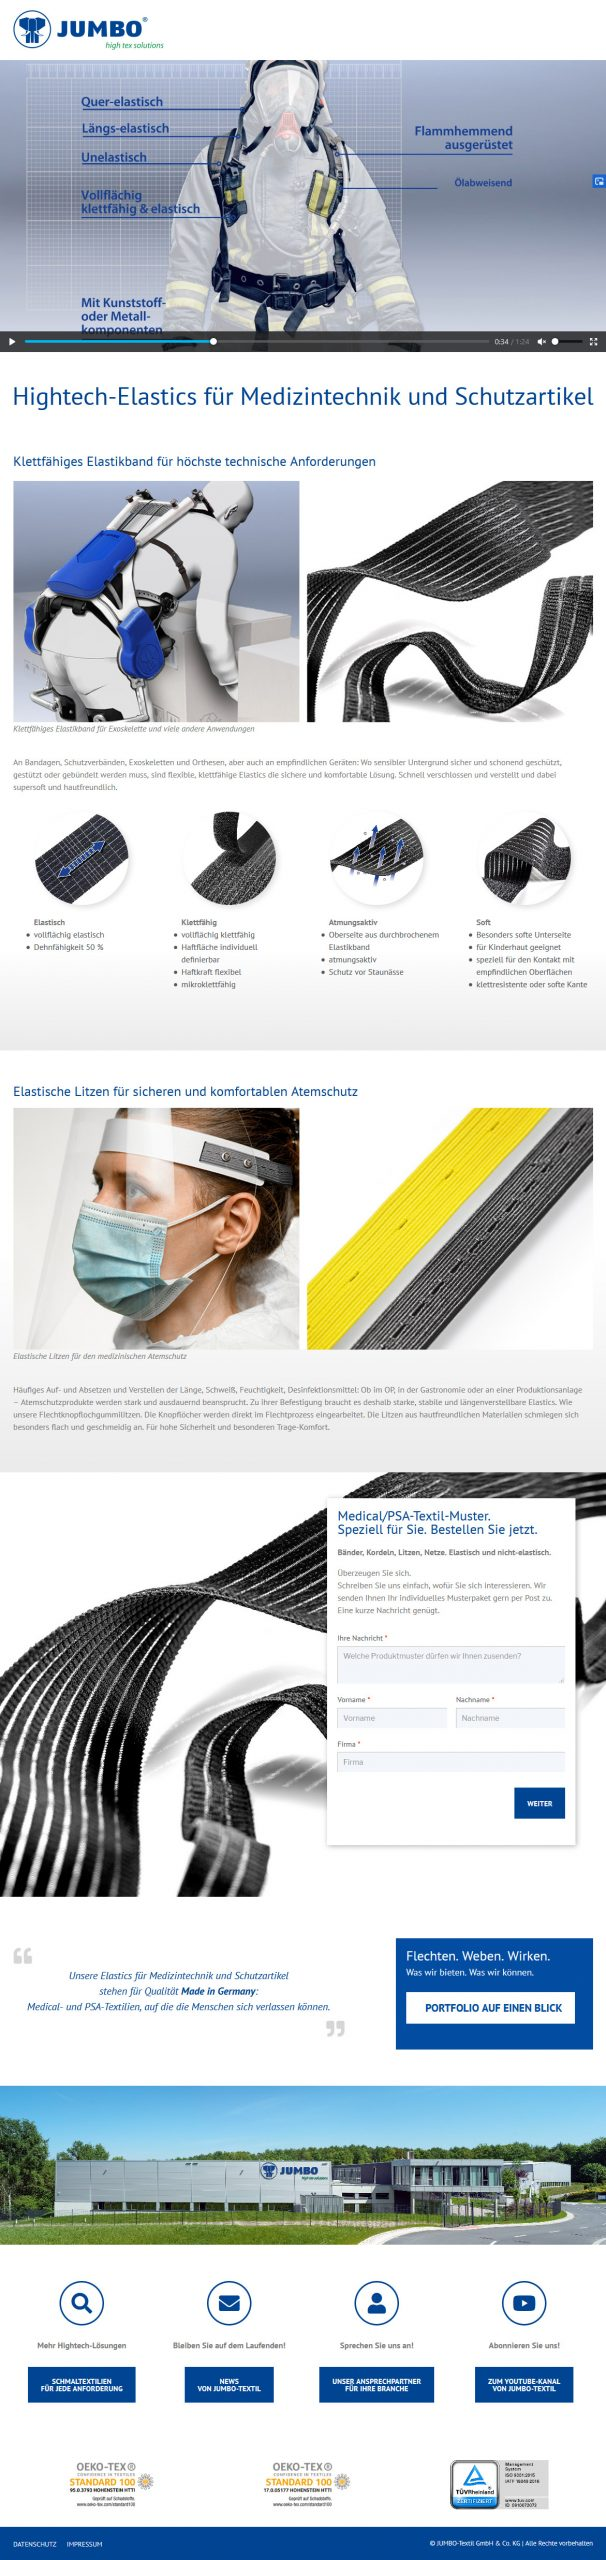 Newsletter_Medical_JUMBO_Textil